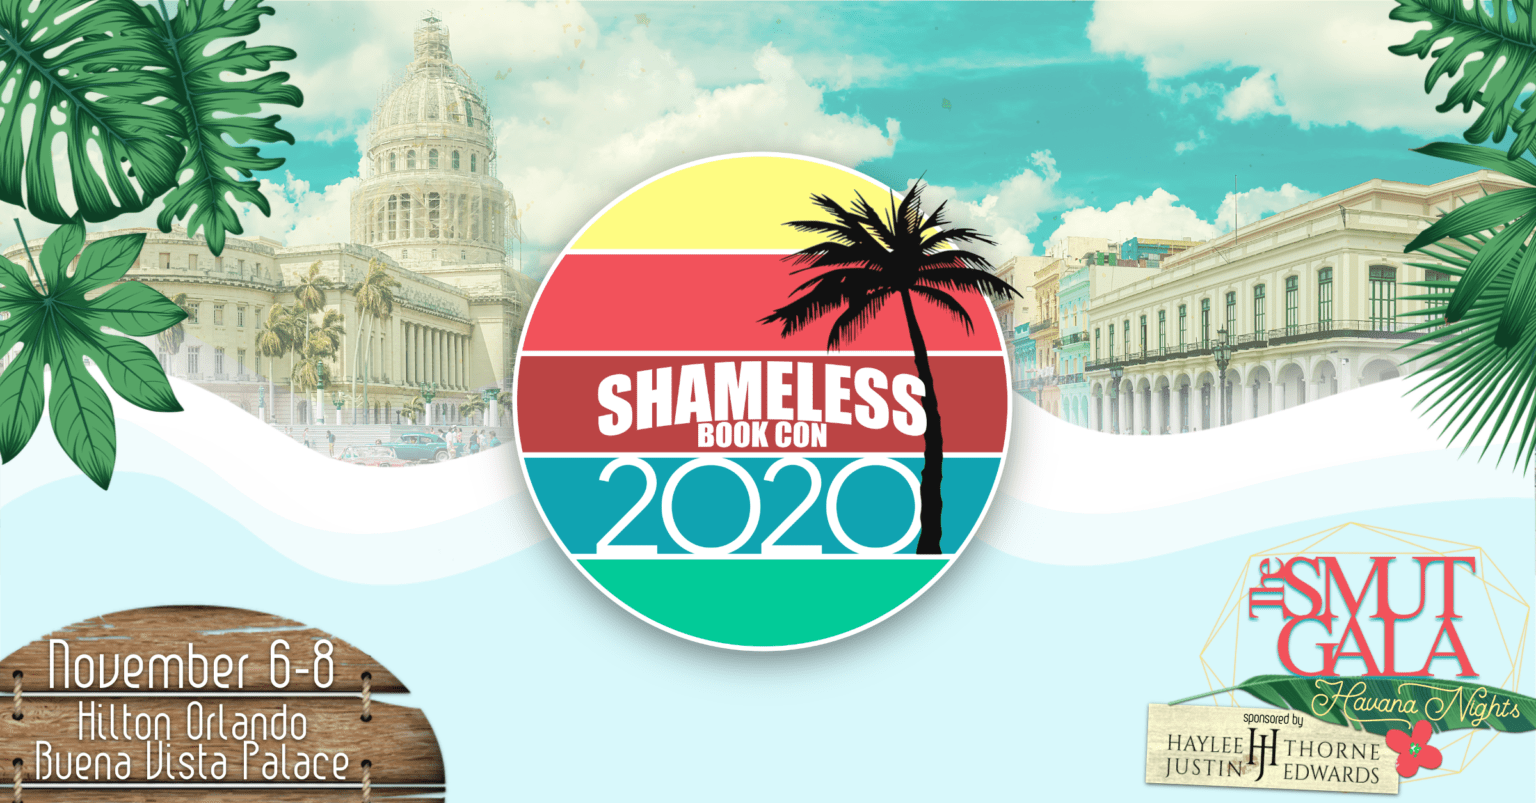 Shameless2020 Main Featured Image Photo